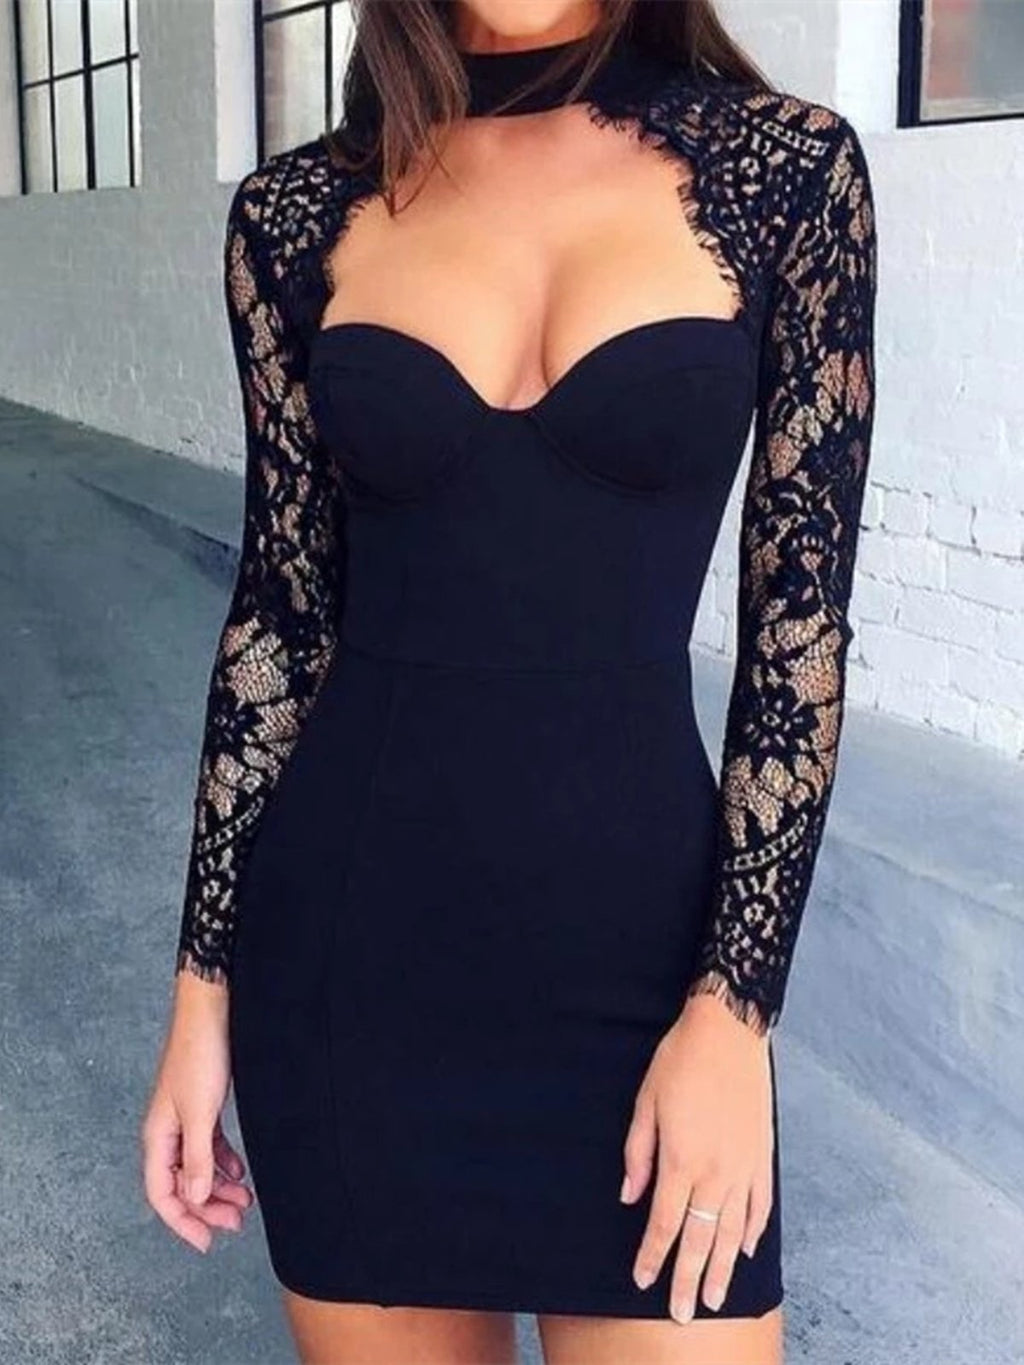 Sexy Push Up Bust Halter Lace sleeve Hollow Out Female Party Sheath Bodycon Mini Dress